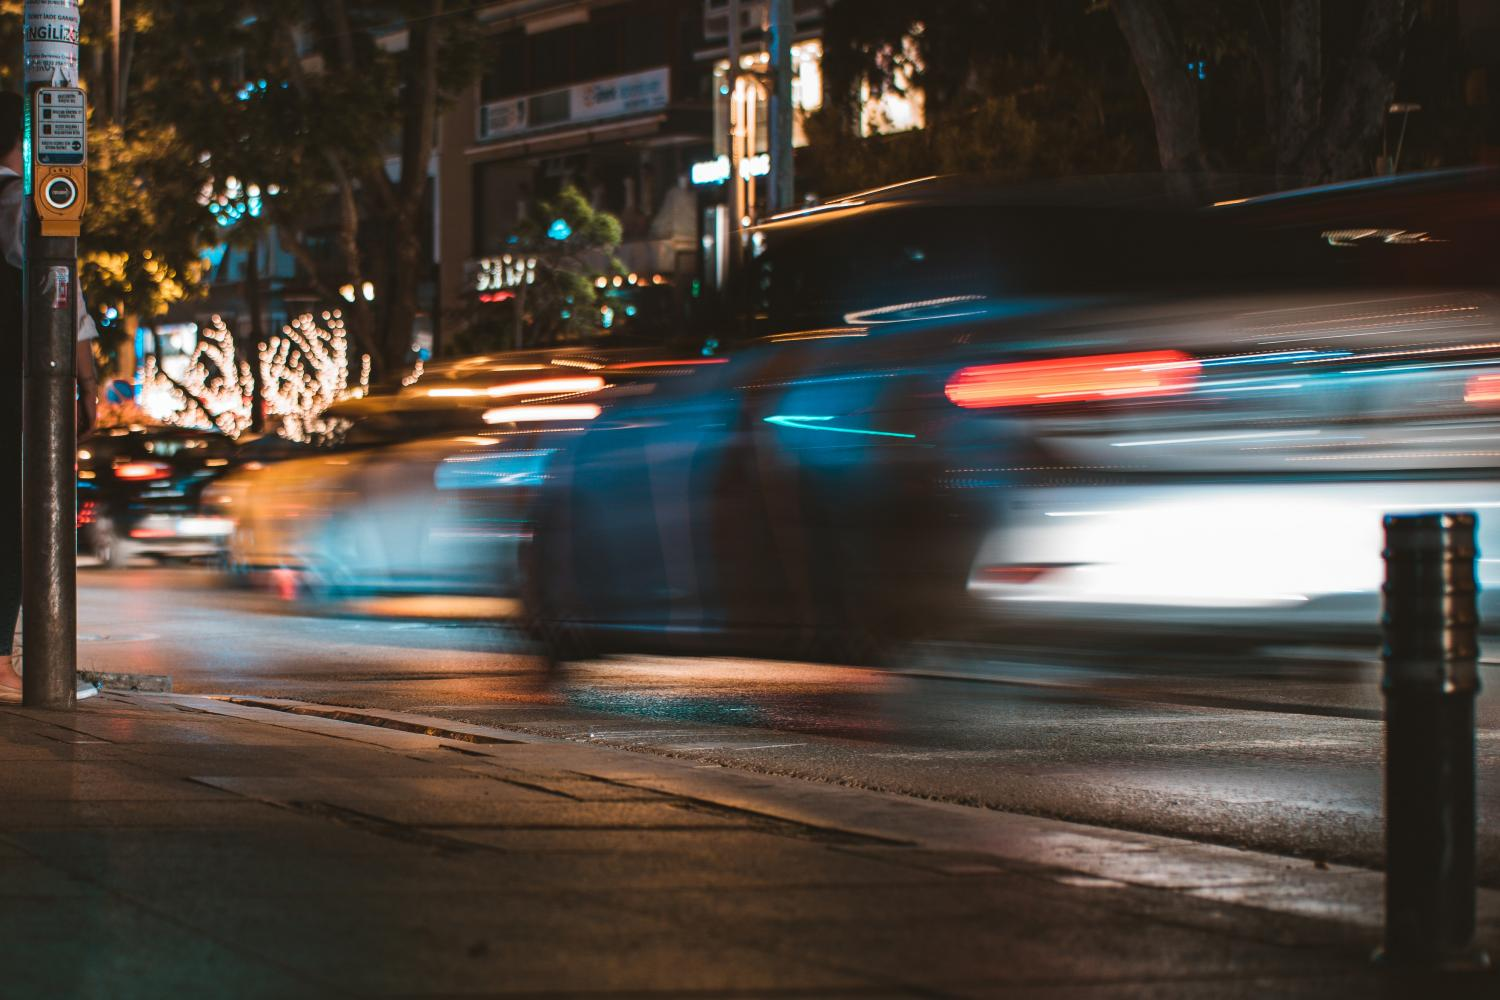 Norwalk, CA – High-Speed Chase in Area of Cheshire Street Leads to Injuries